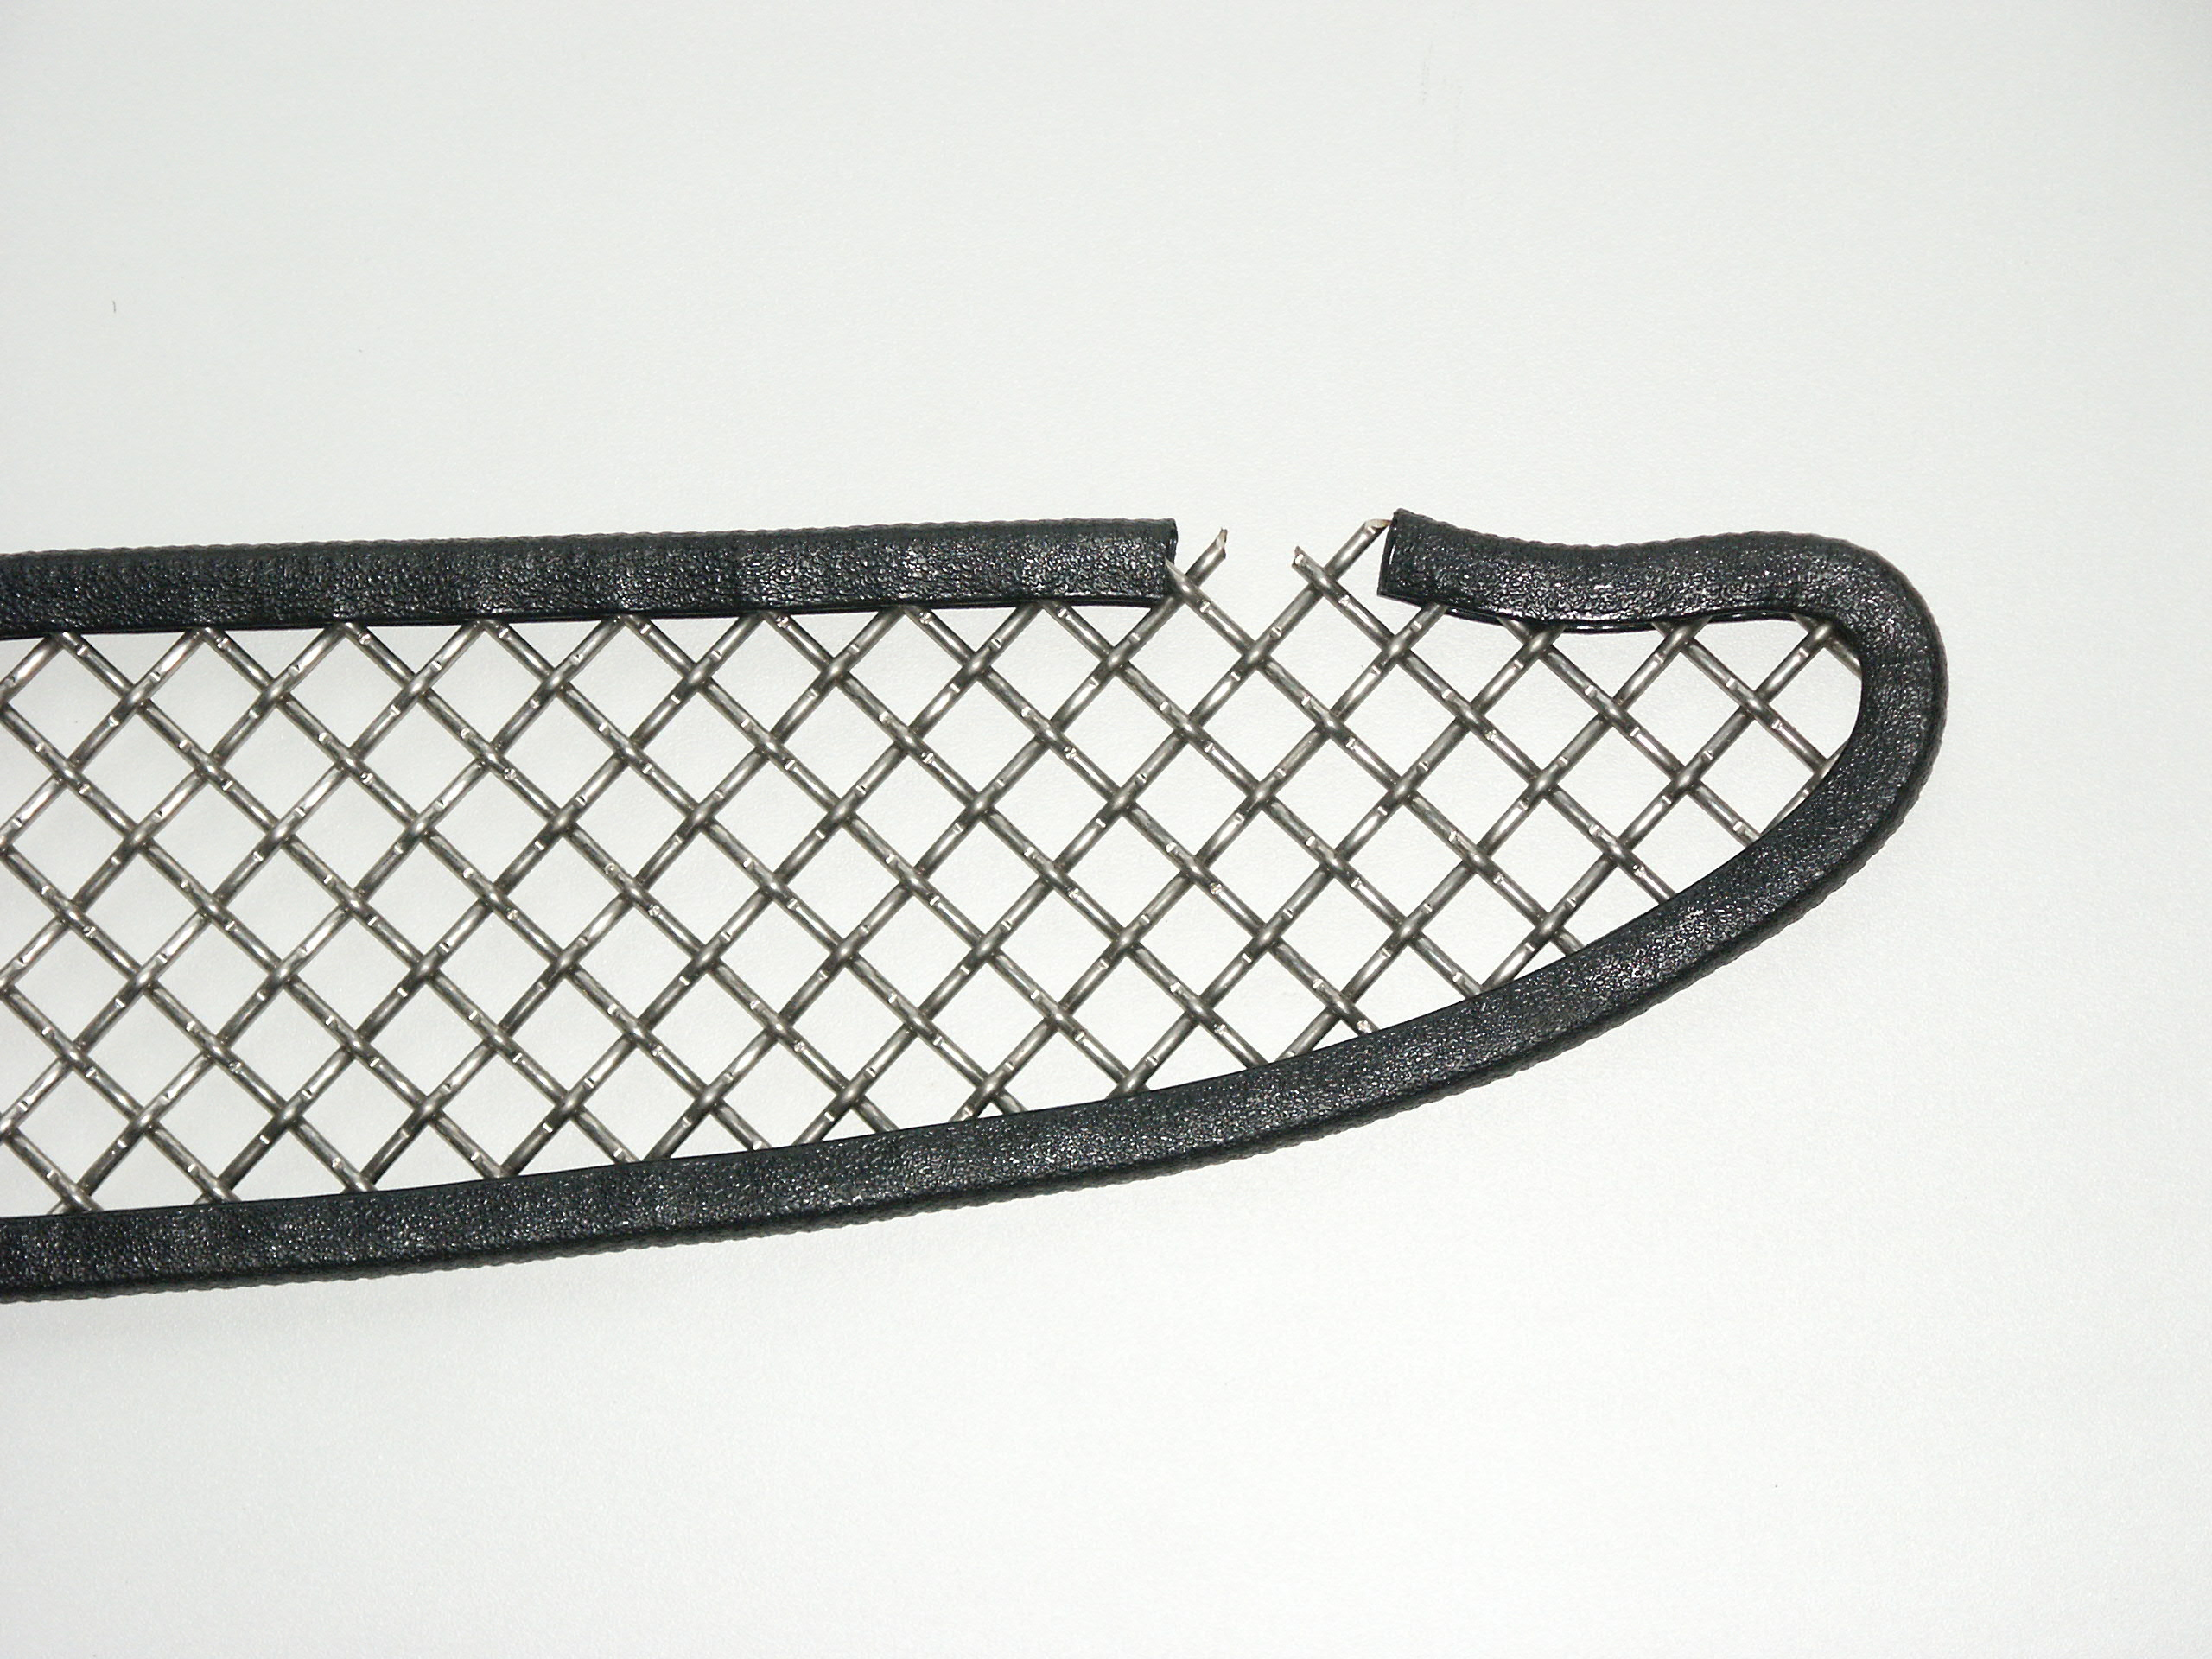 Ultra-Heavy Mesh Grille